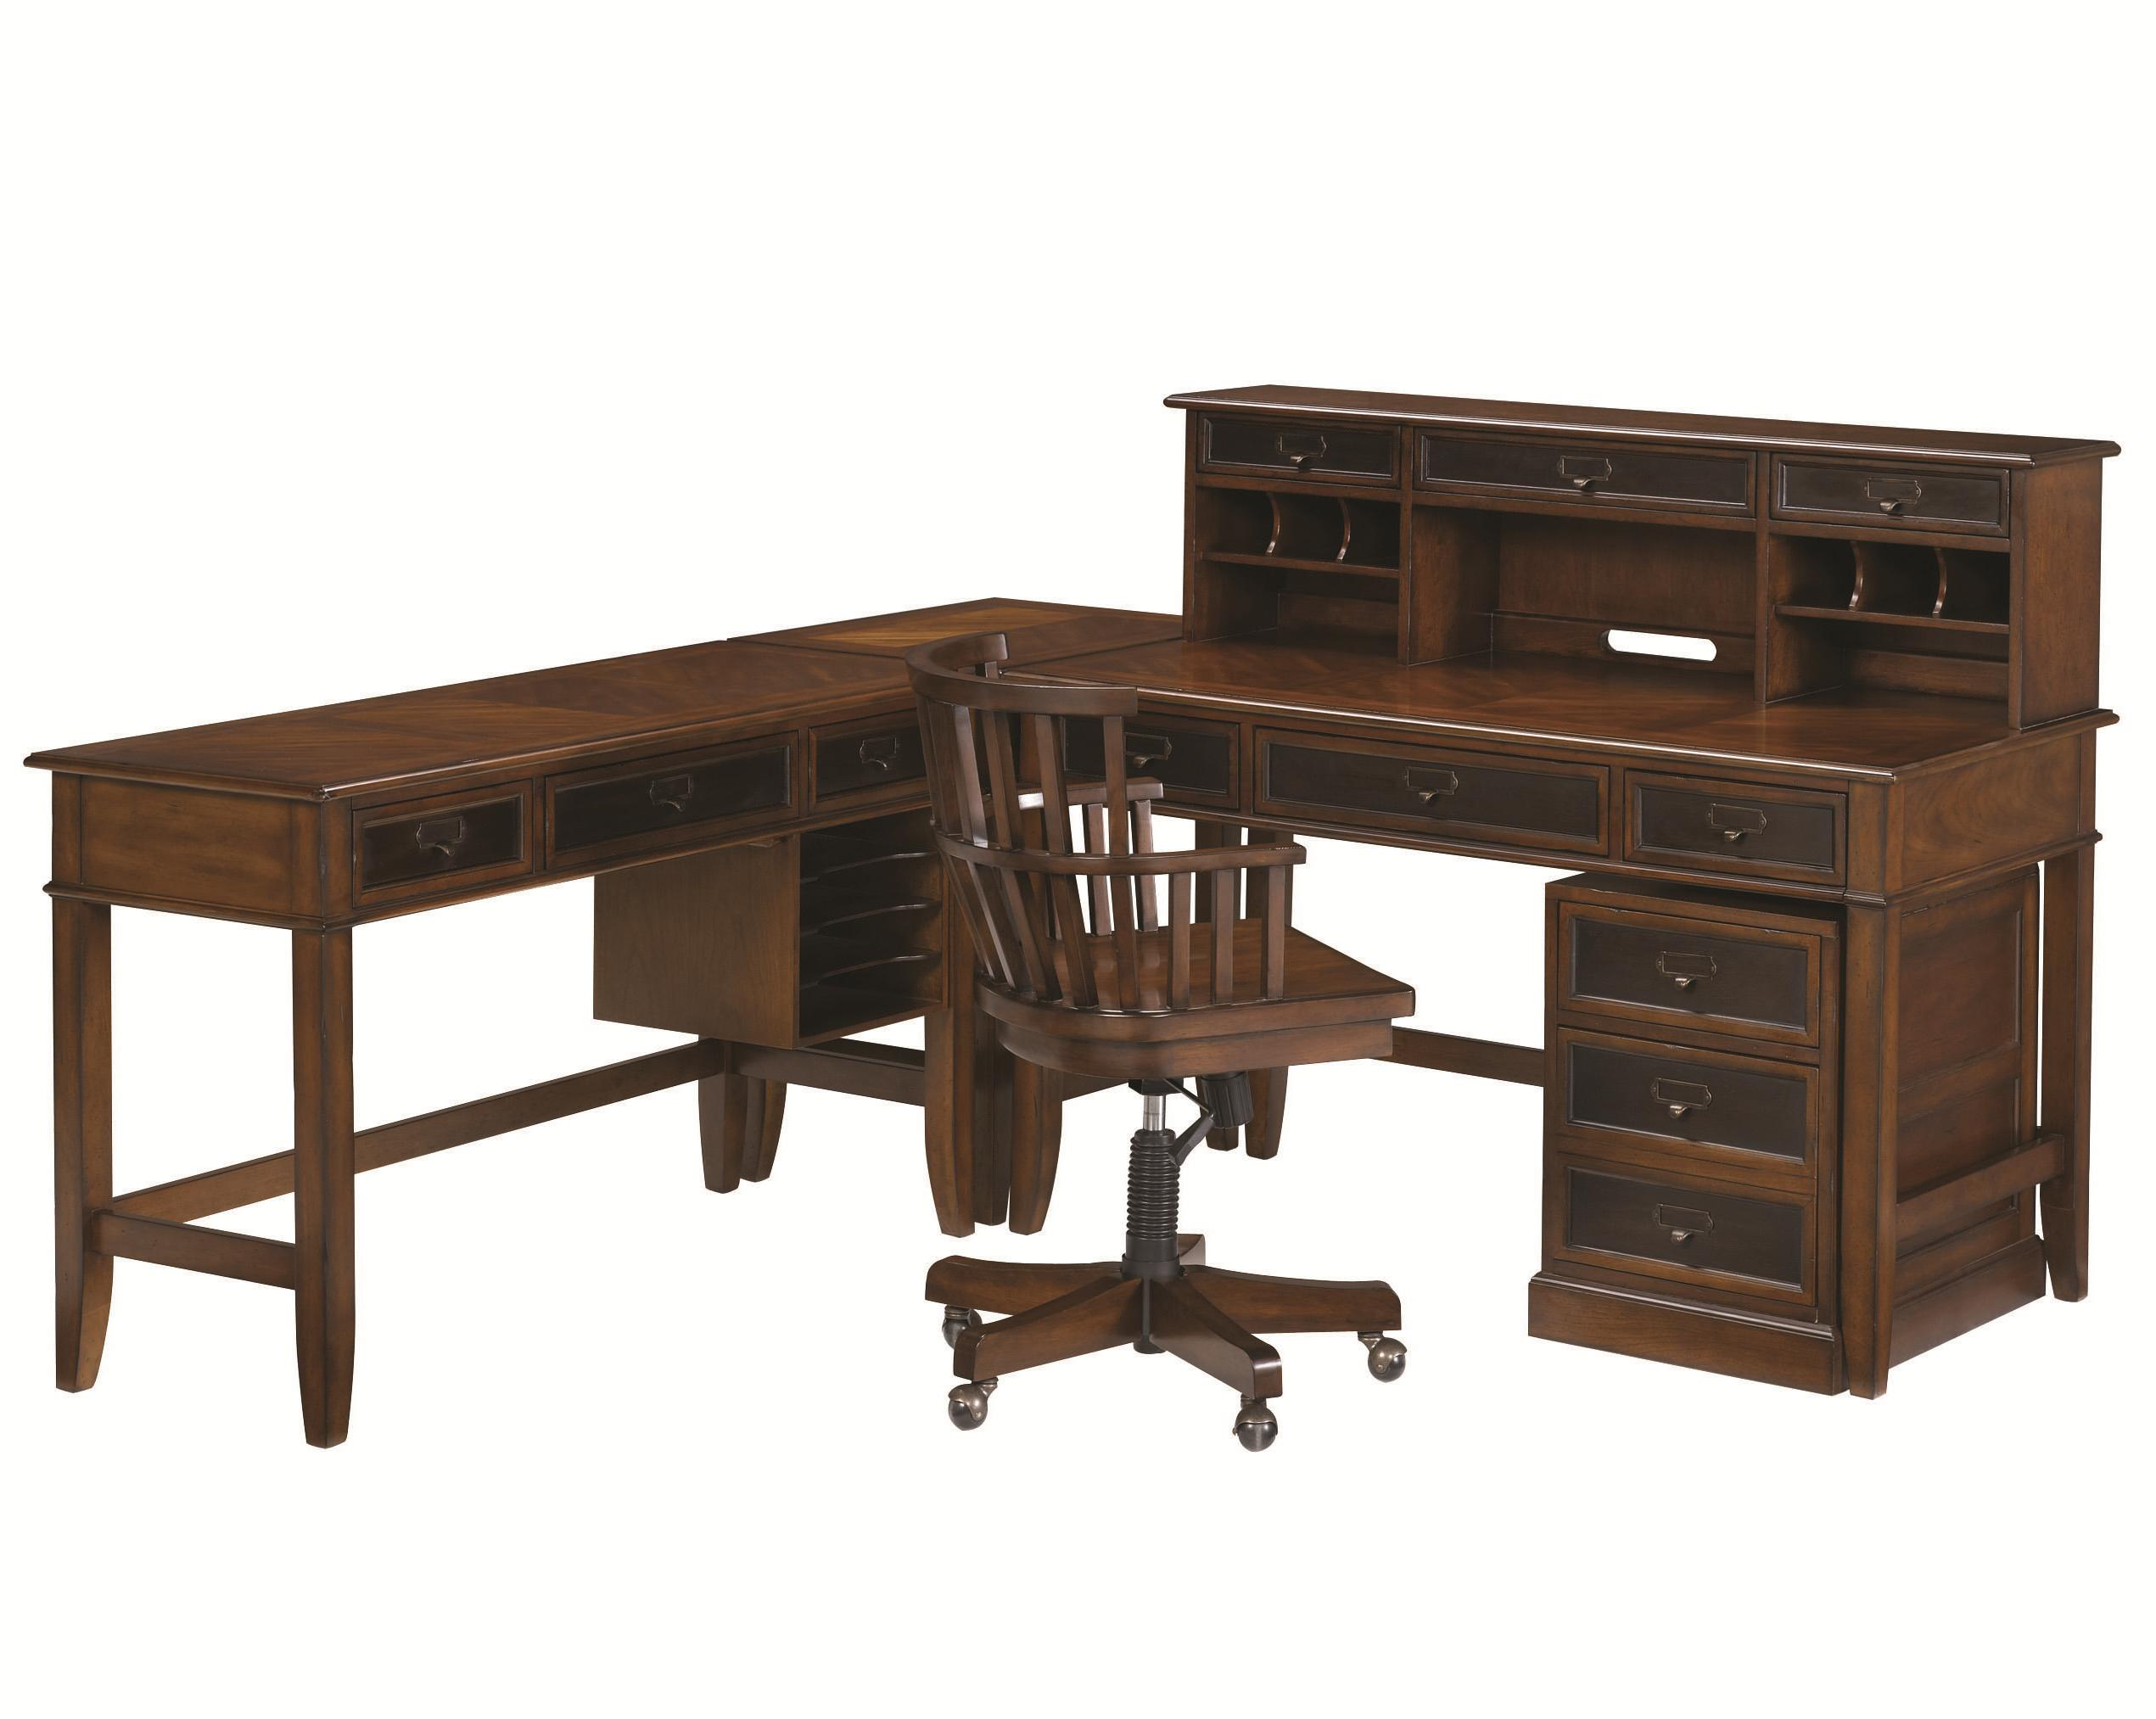 L Shaped Desk and Credenza by Hammary